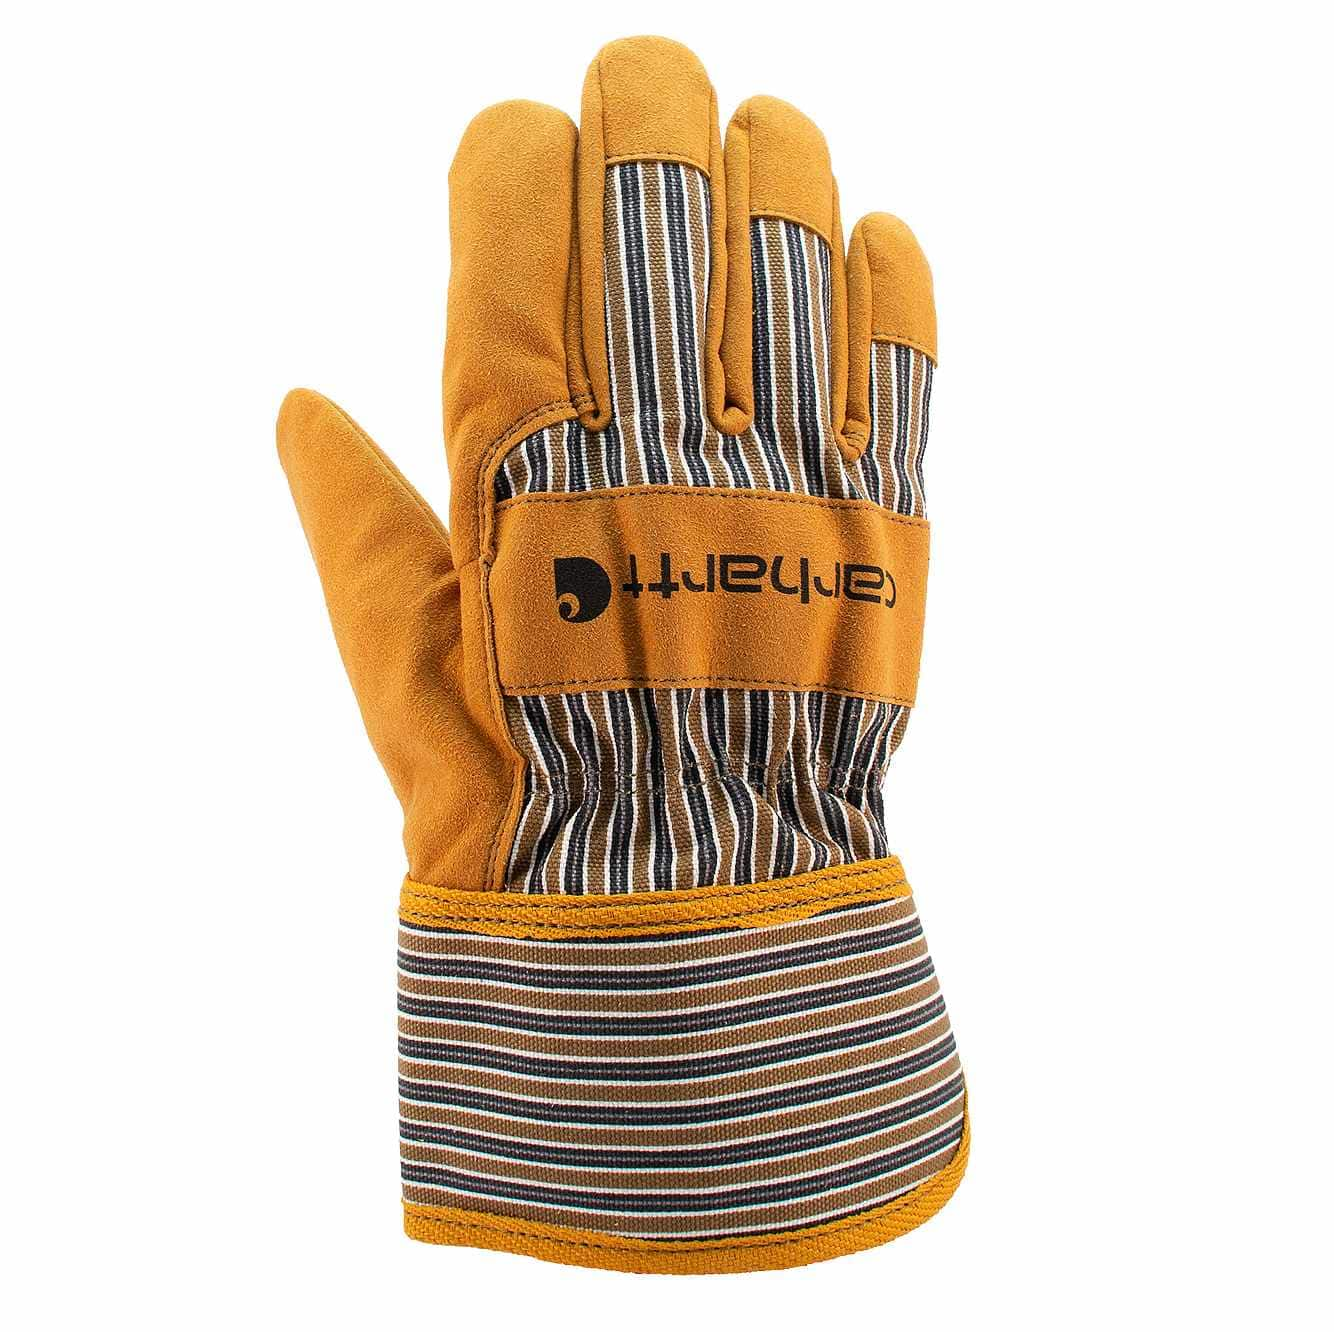 Picture of Synthetic Suede Safety Cuff Work Glove in Brown